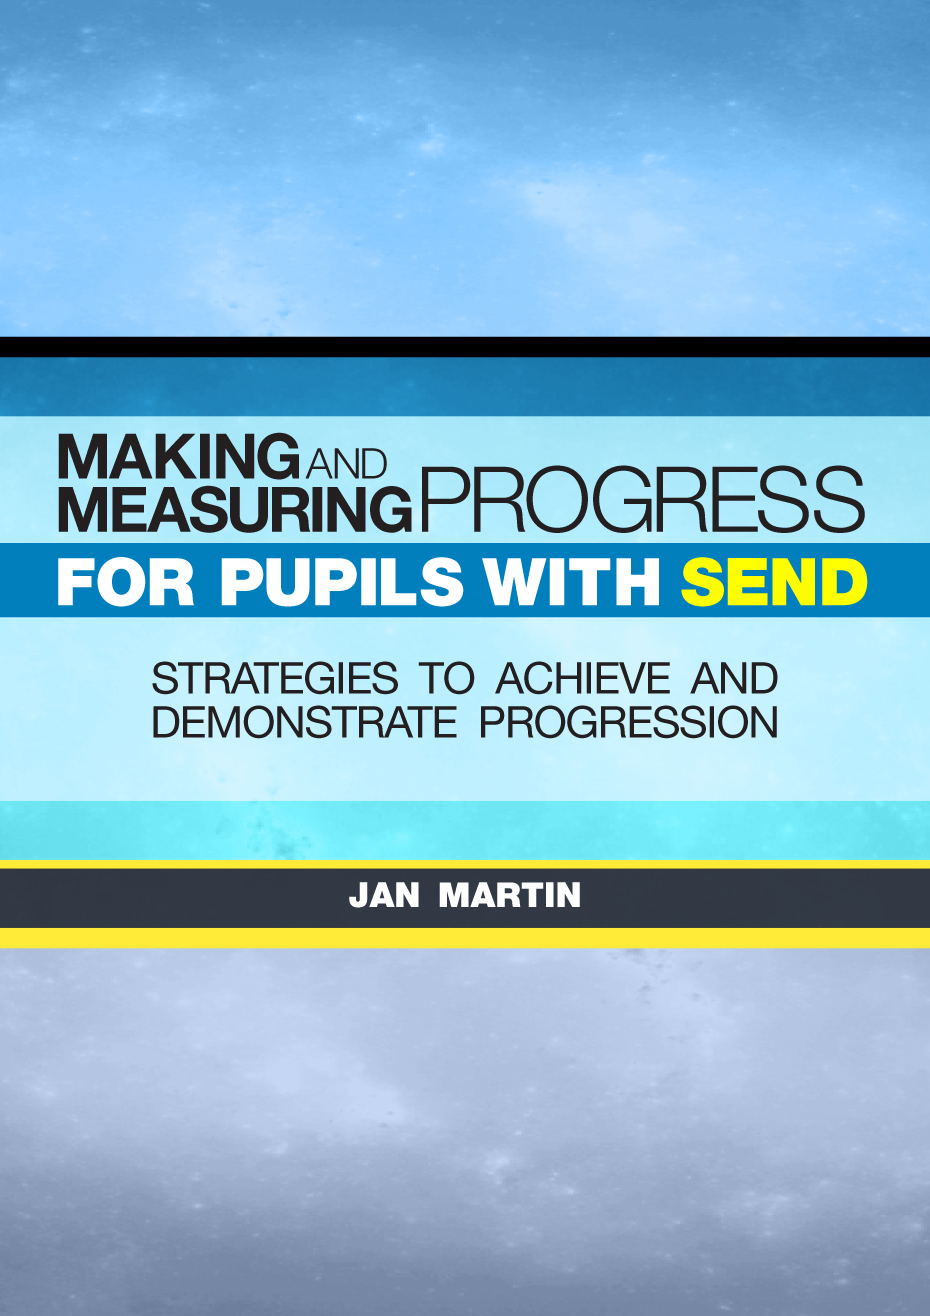 Making and Measuring Progress for Pupils with SEND: Strategies to achieve and demonstrate progress